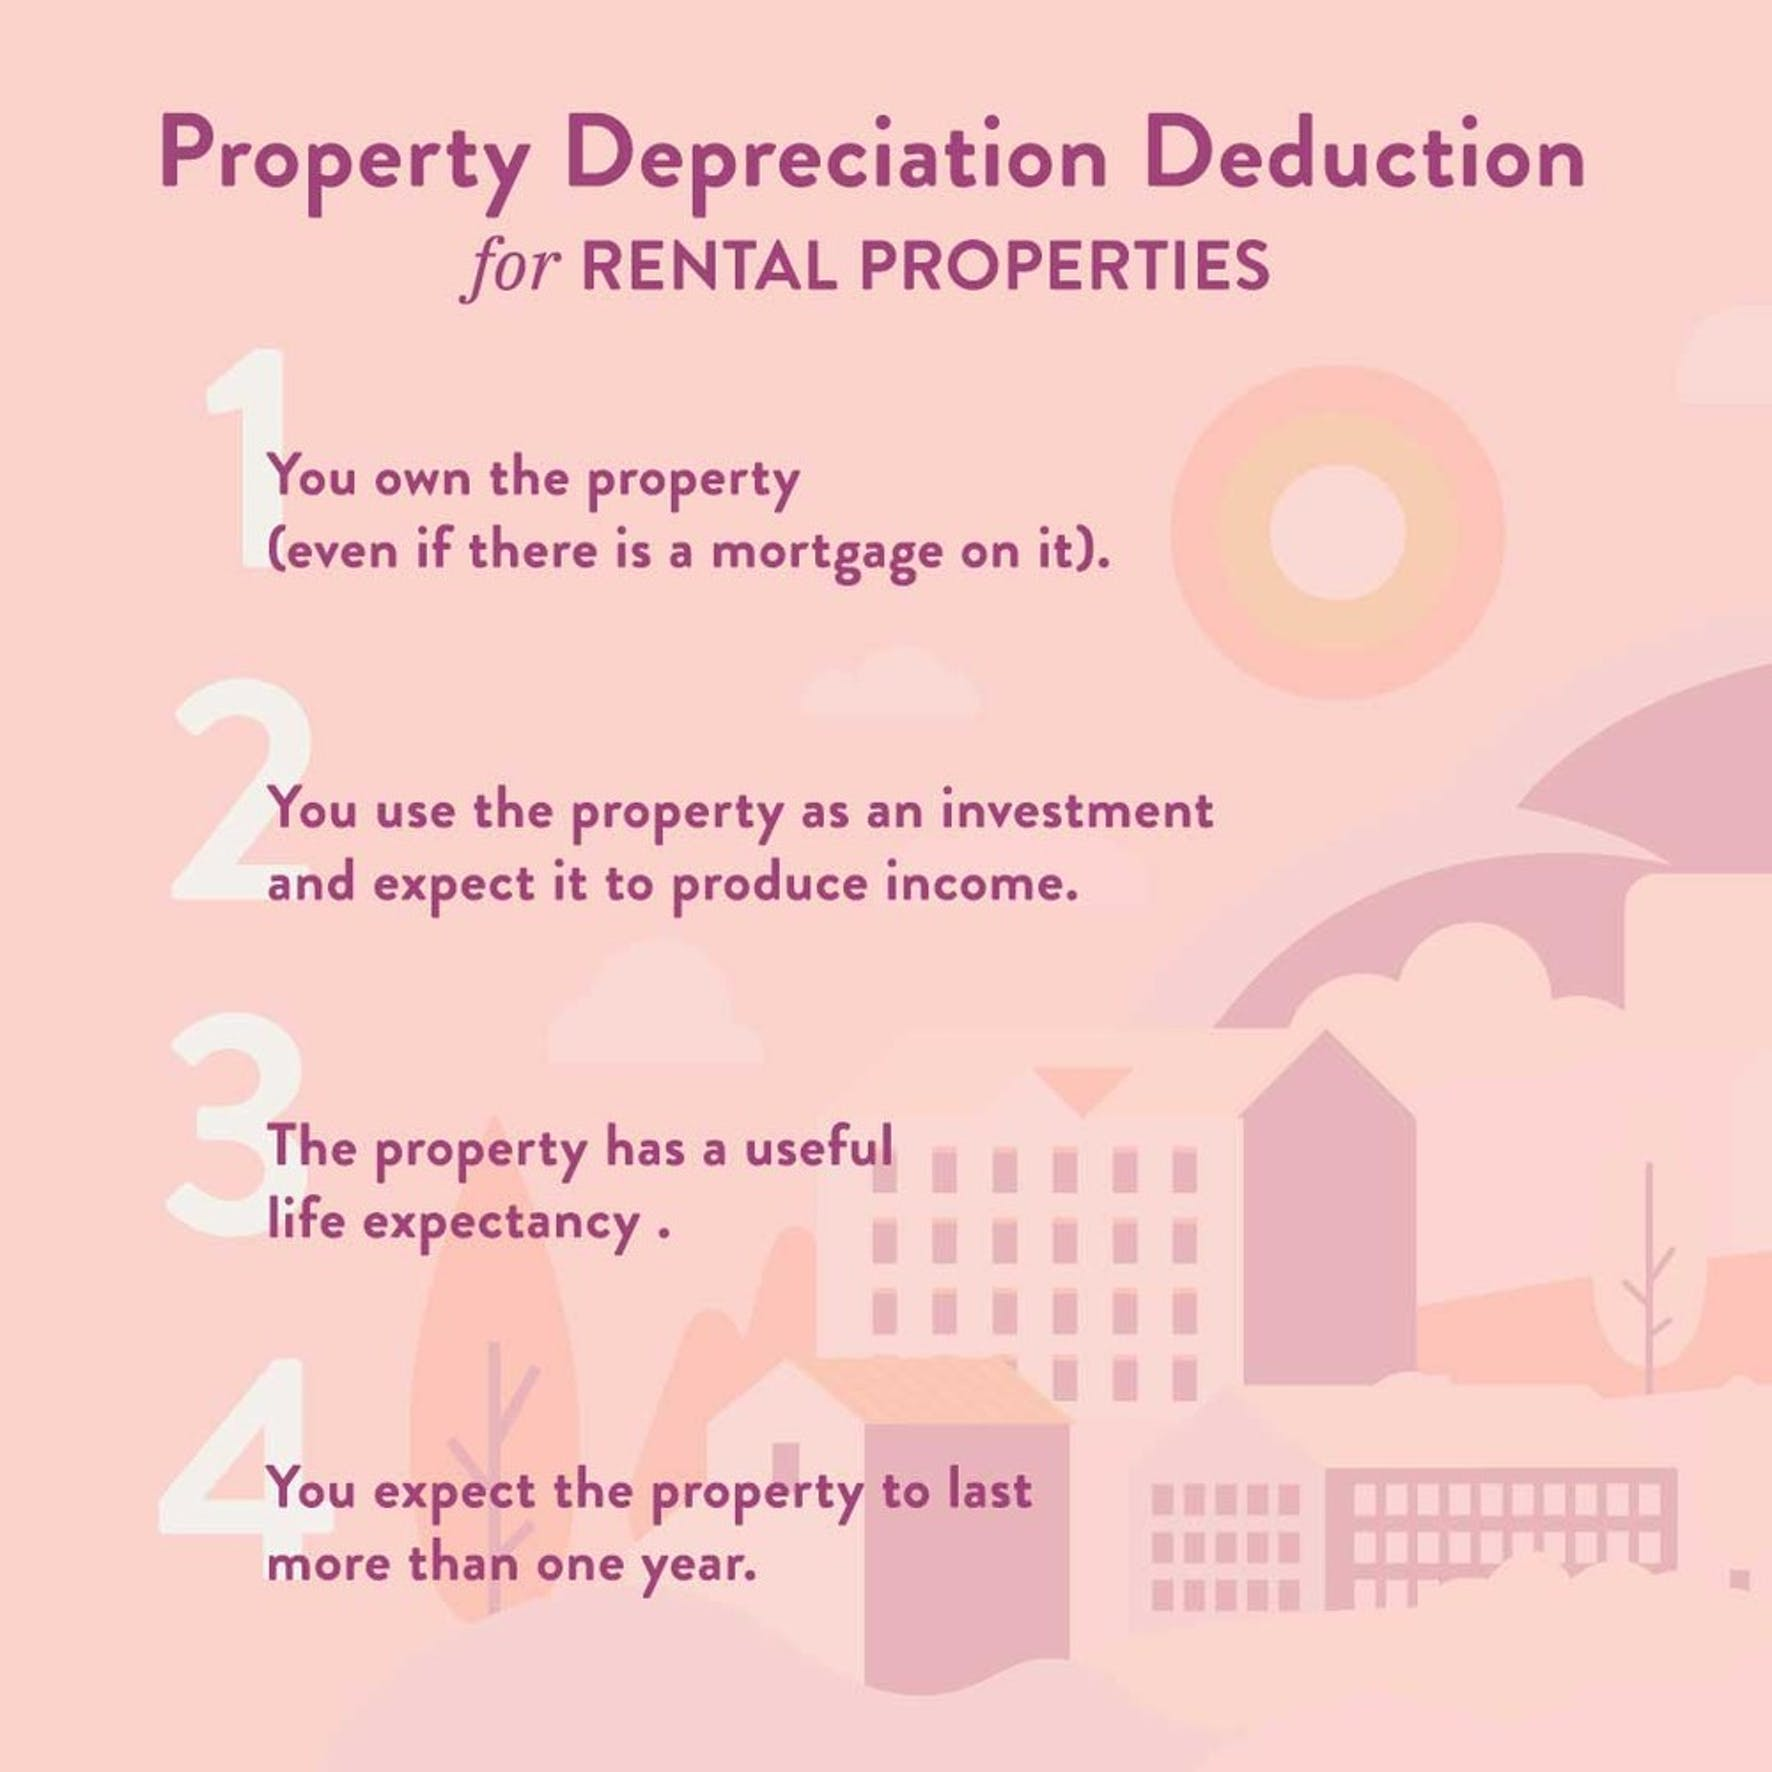 Property depreciation deduction for rental properties